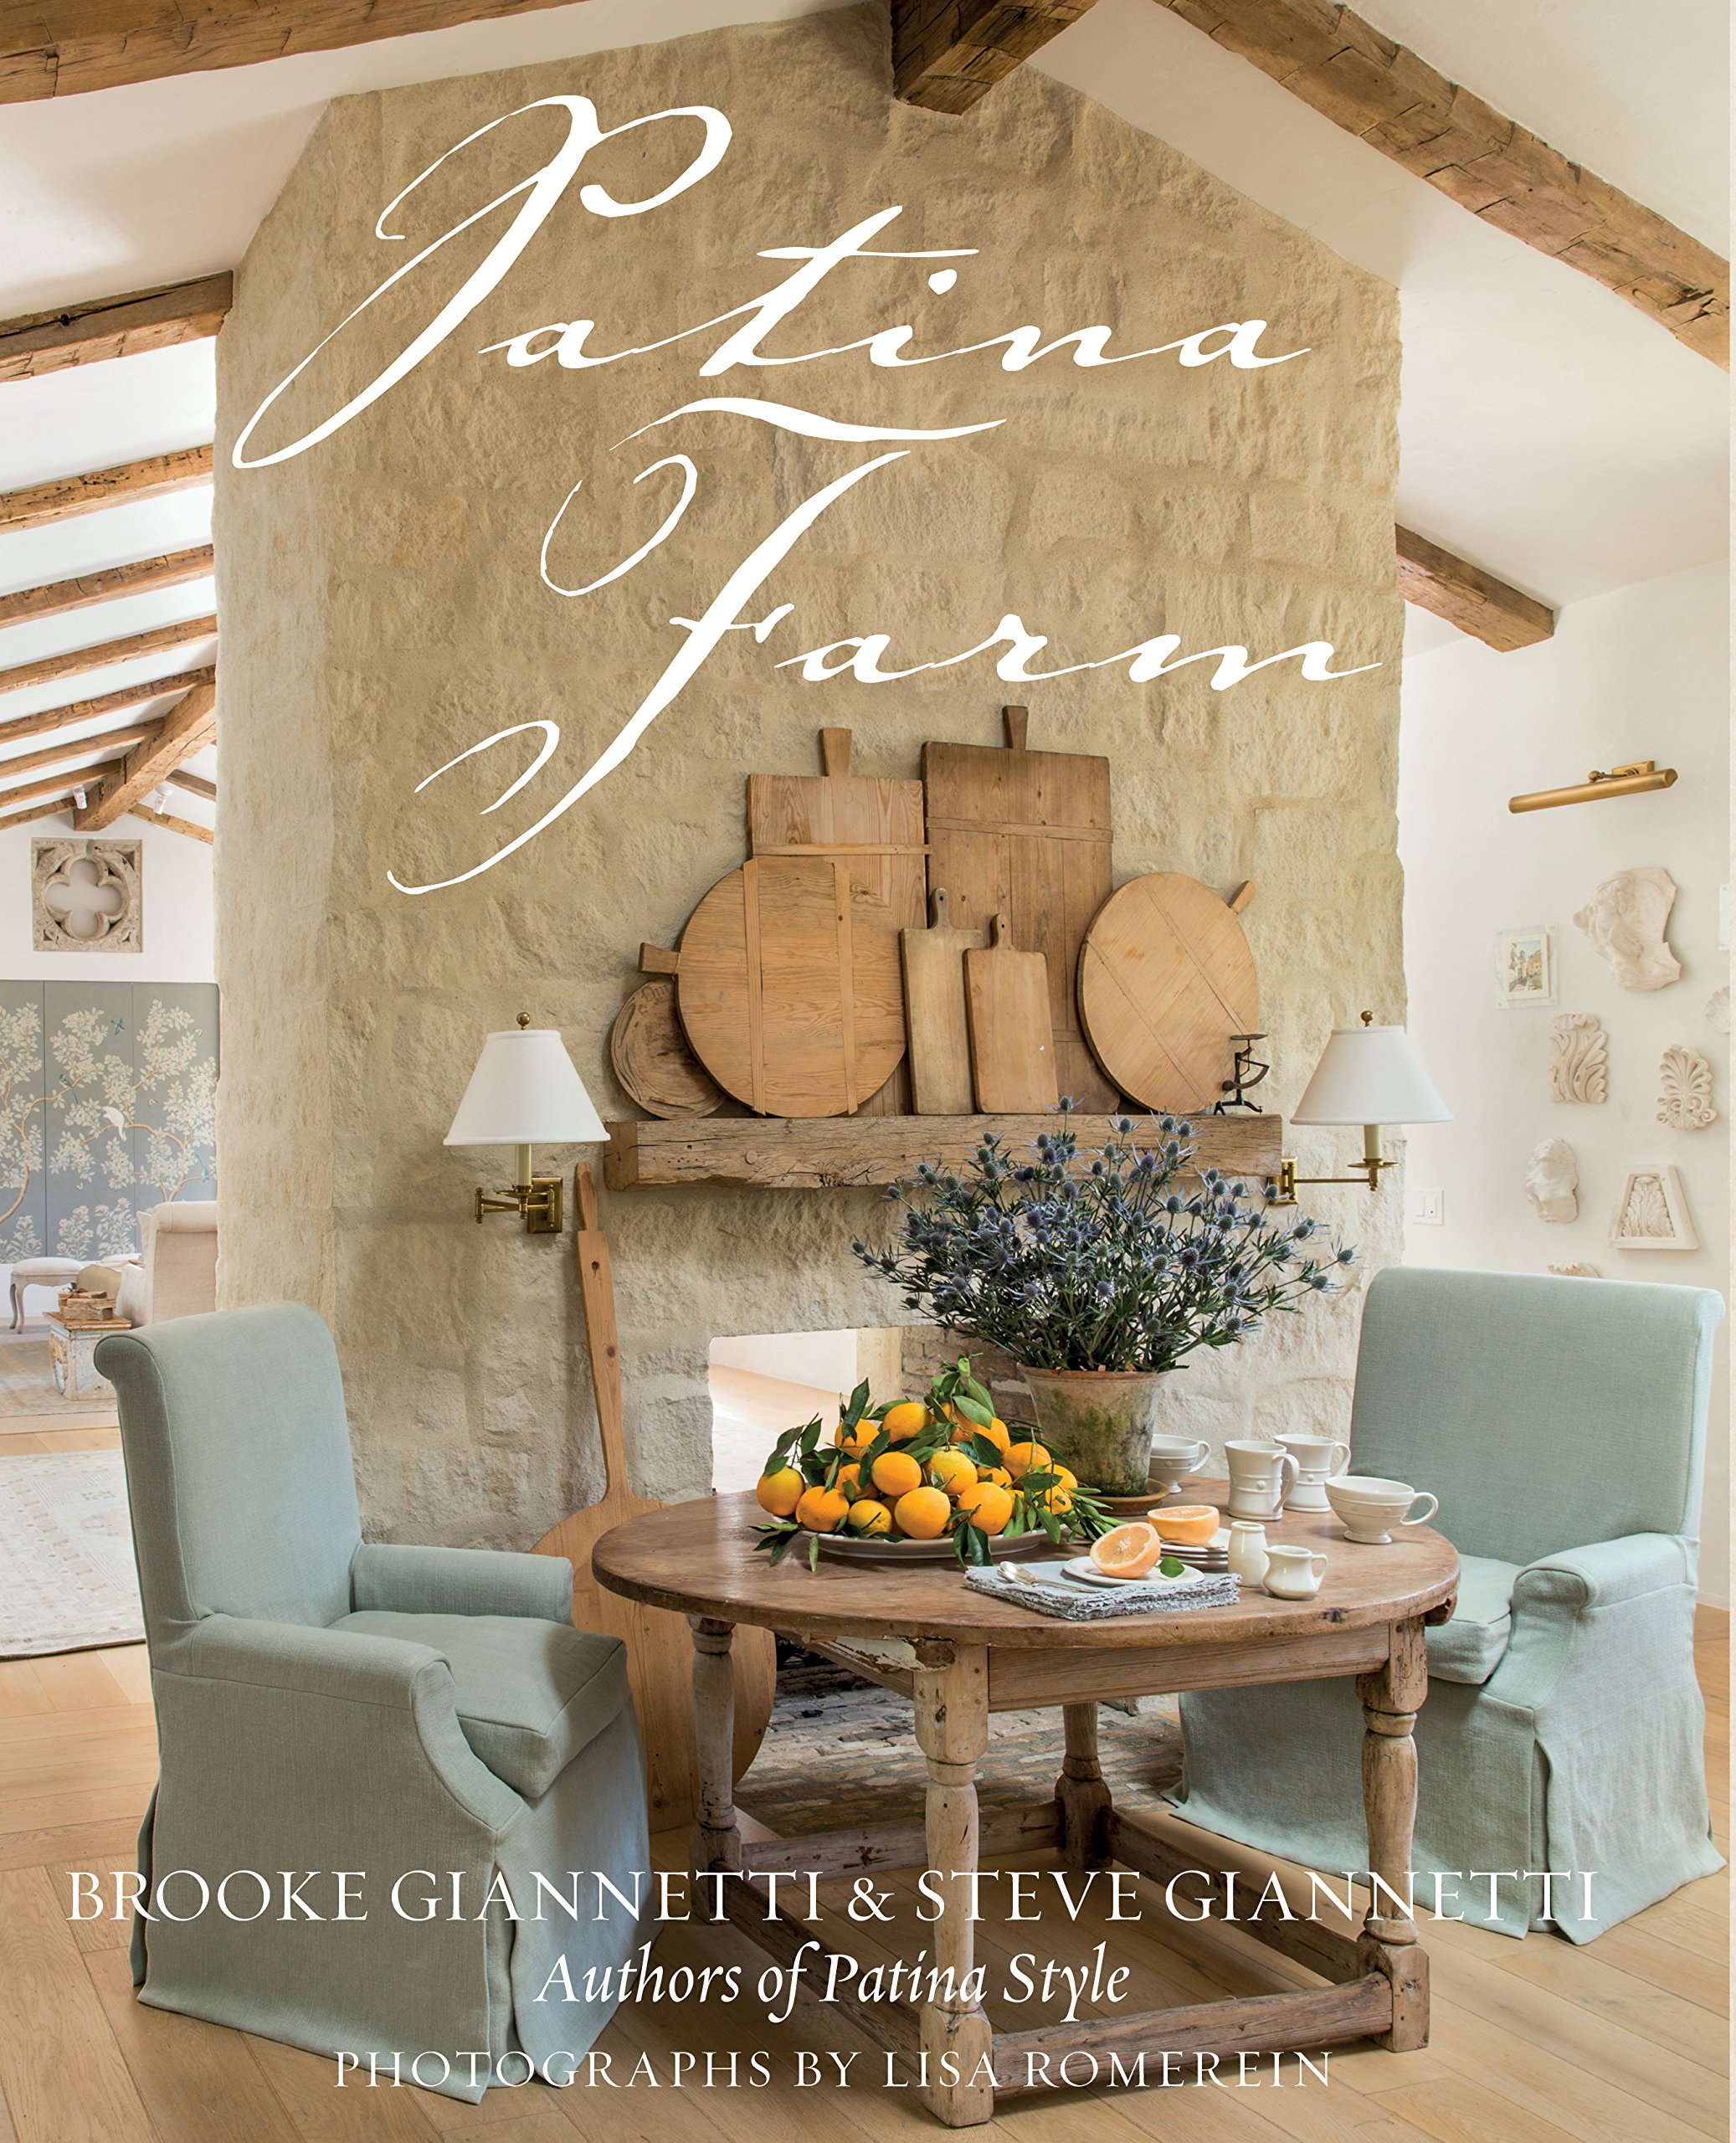 Patina Farm: Steve Giannetti, Brooke Giannetti: 9781423640462 ...